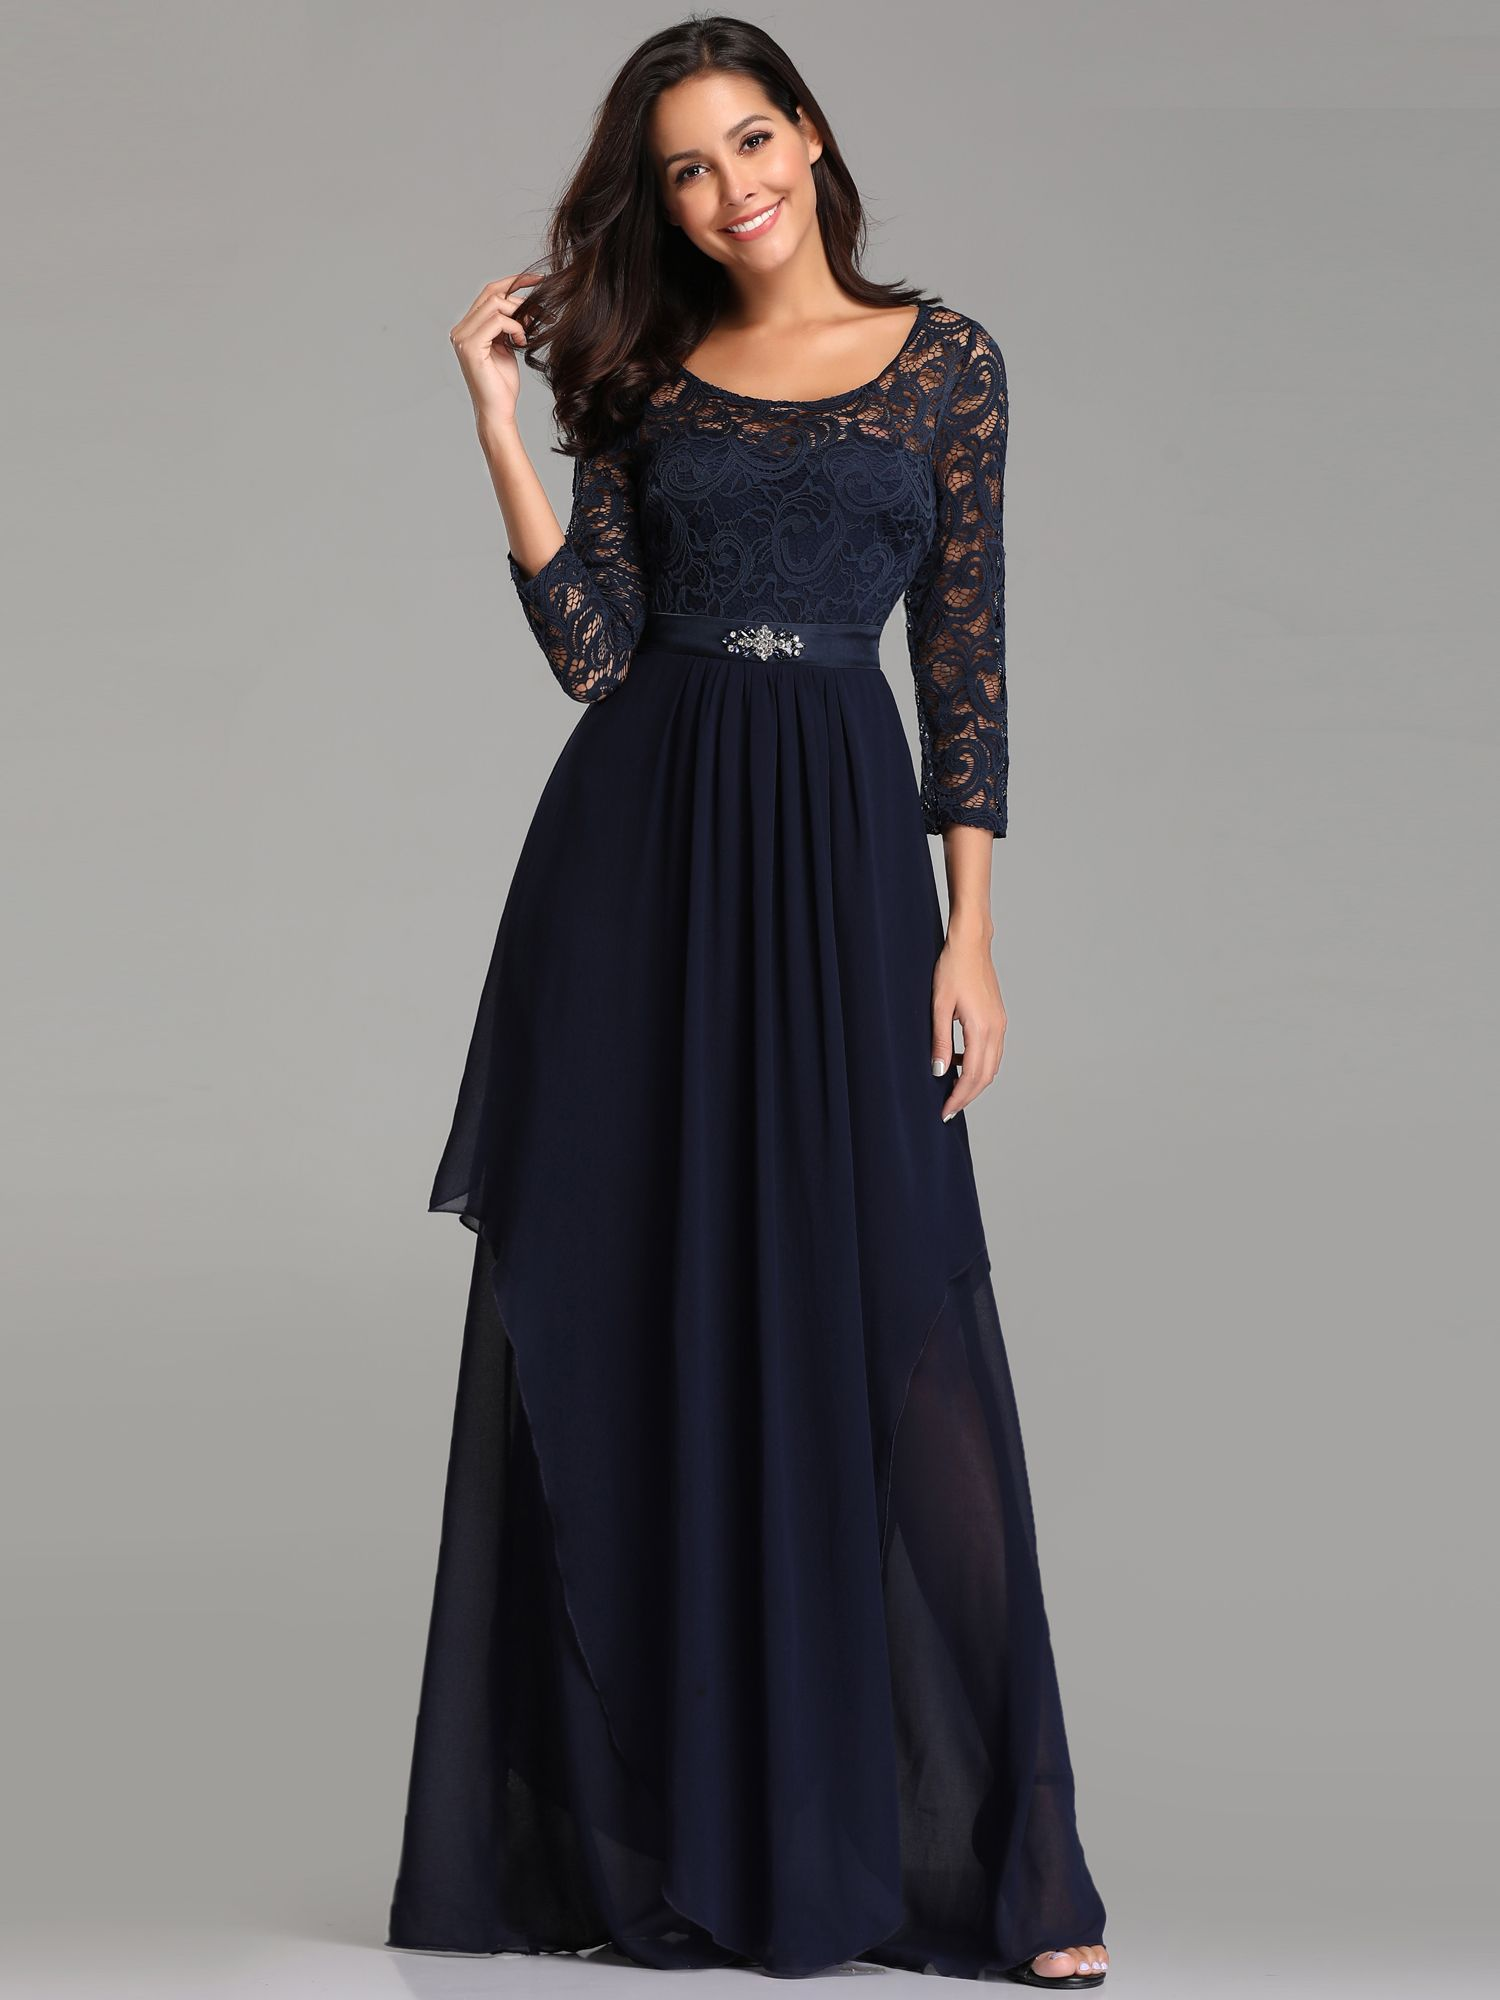 6f65ec634a Ever-Pretty Plus Size Long Sleeve Evening Dress Navy Blue Bridesmaid Gown  07716 Sleeve Evening Long